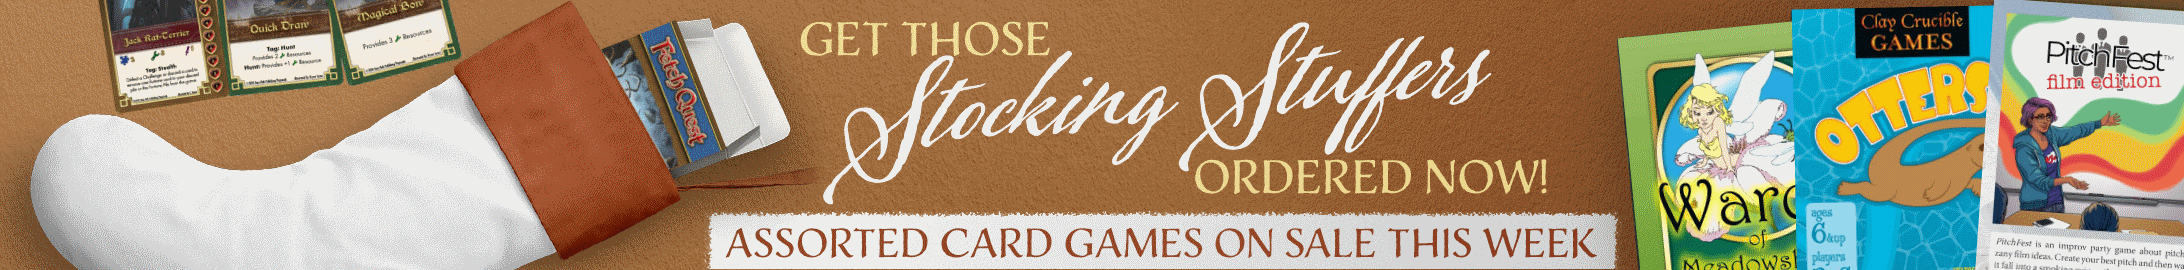 Stocking stuffers: assorted card games on sale @ DriveThruCards.com